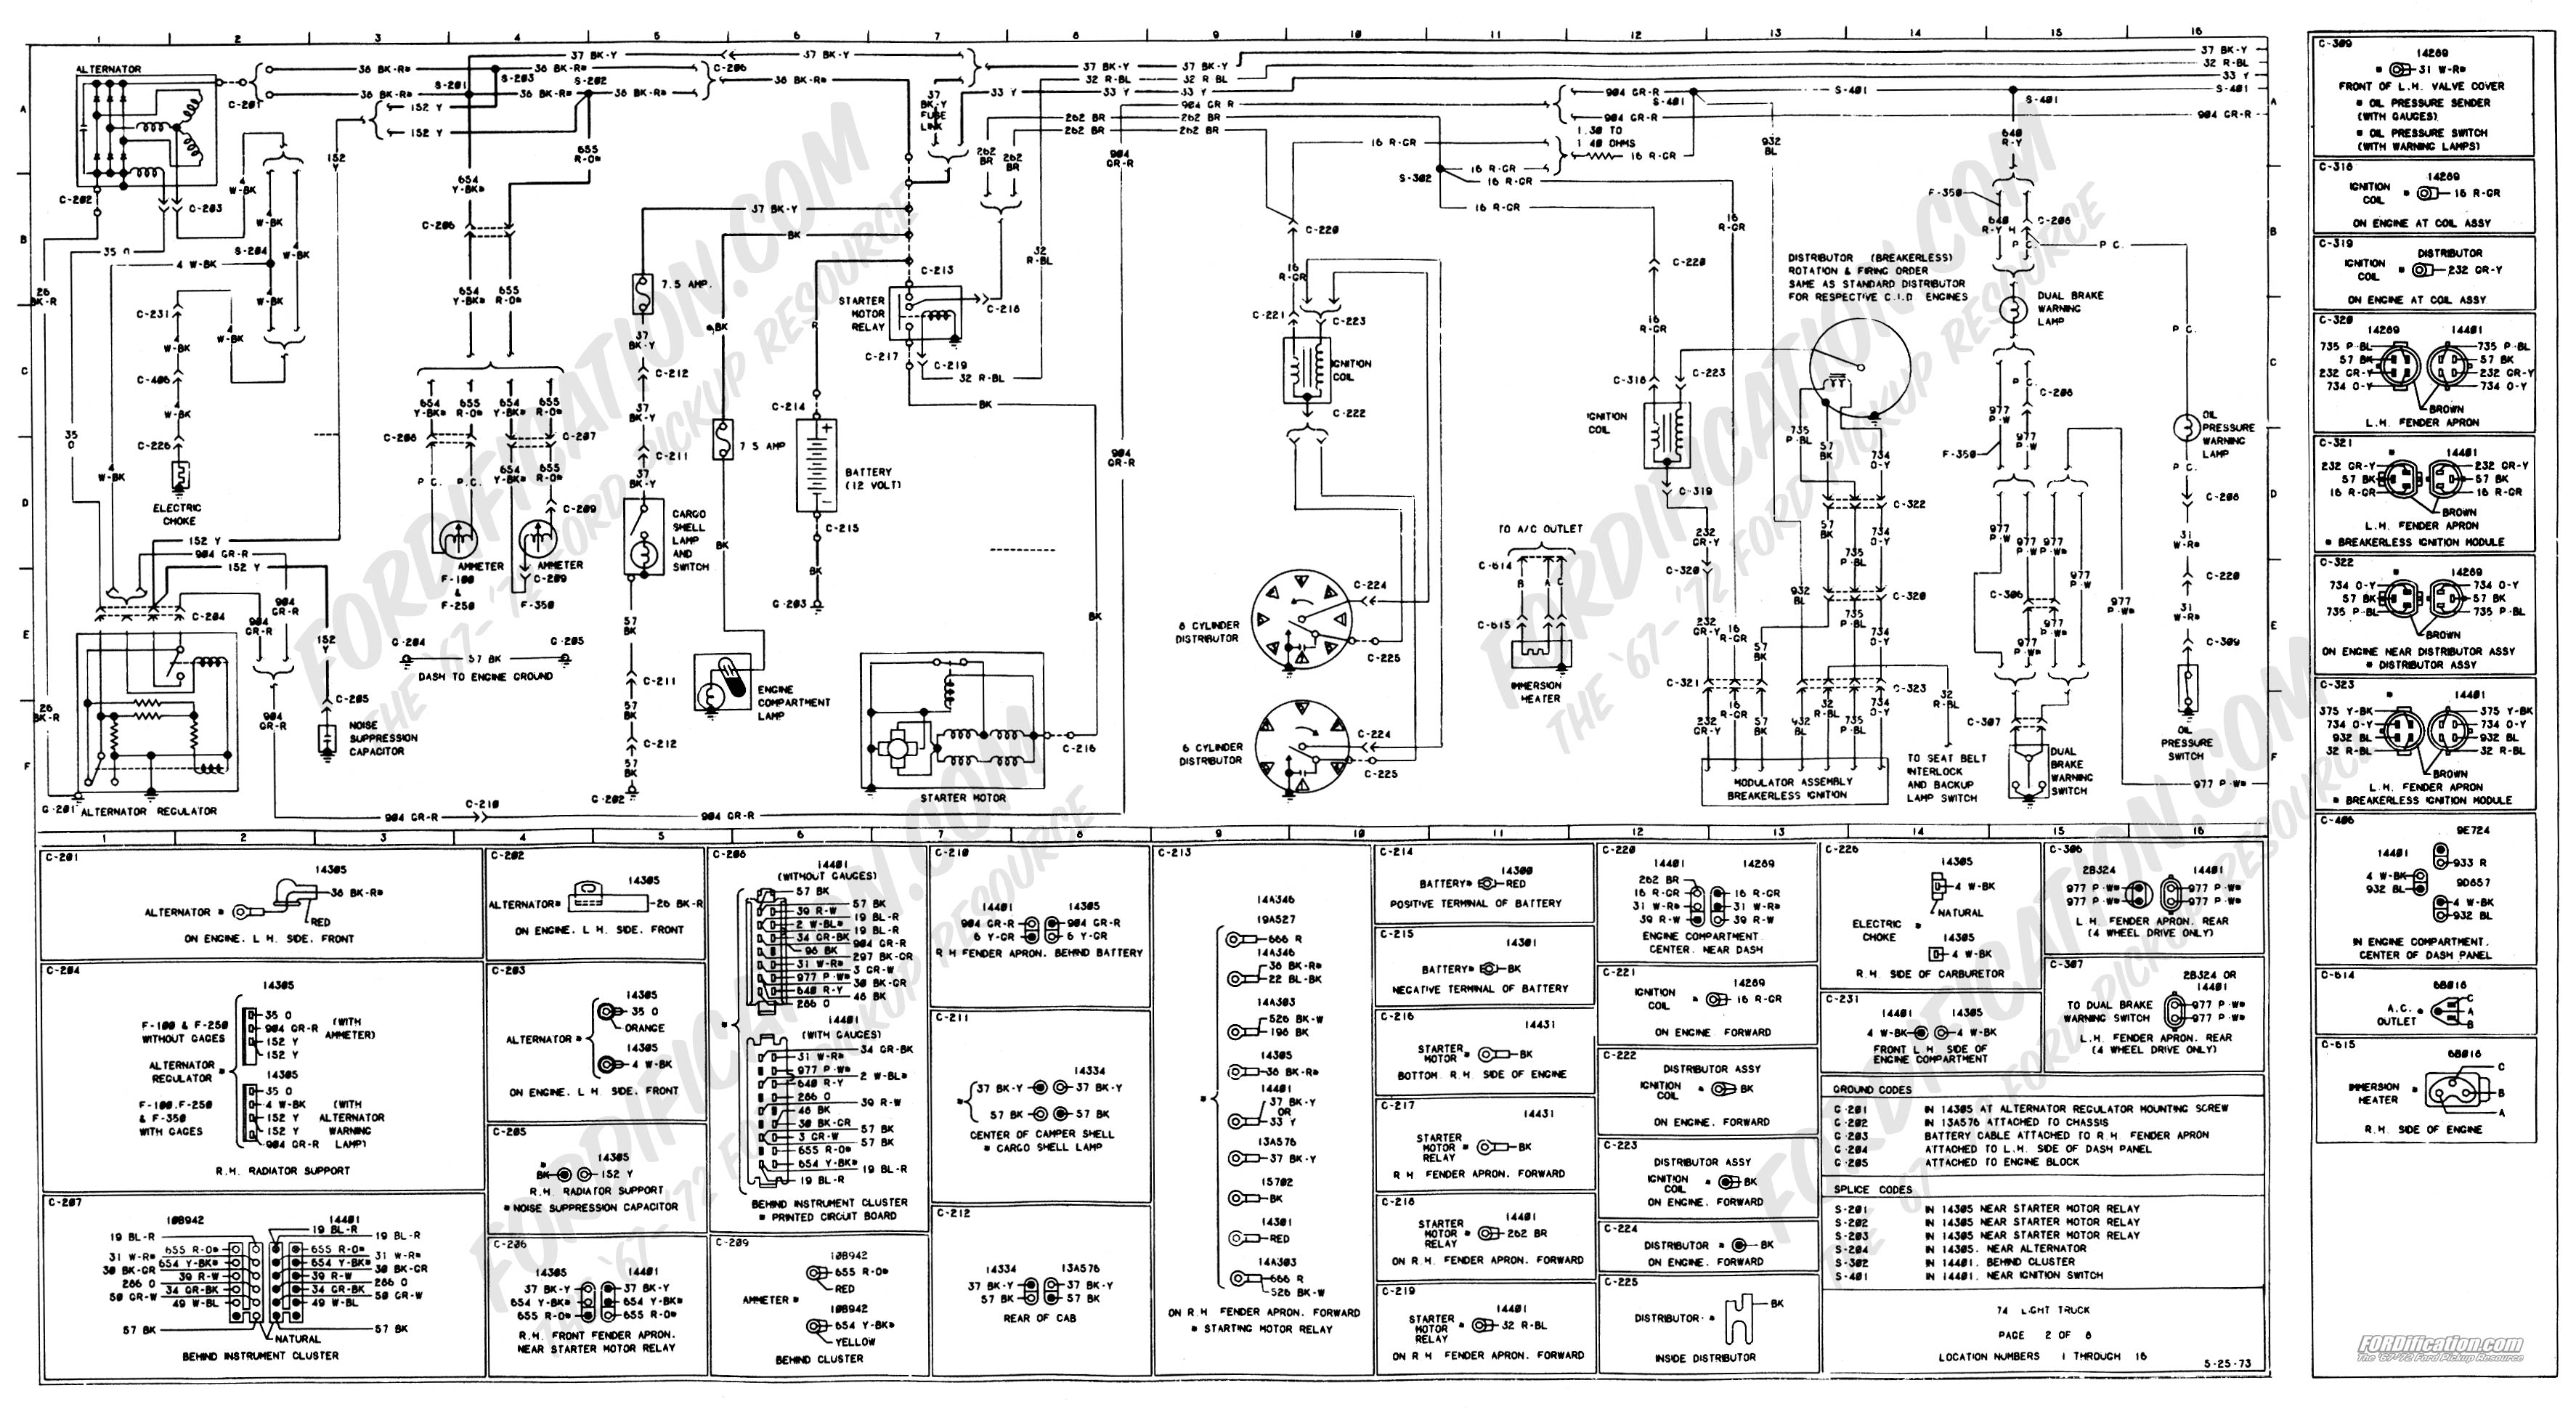 1976 Ford Alternator Wiring Diagram Will Be A Thing 2g Detailed Schematics Rh Jvpacks Com 1975